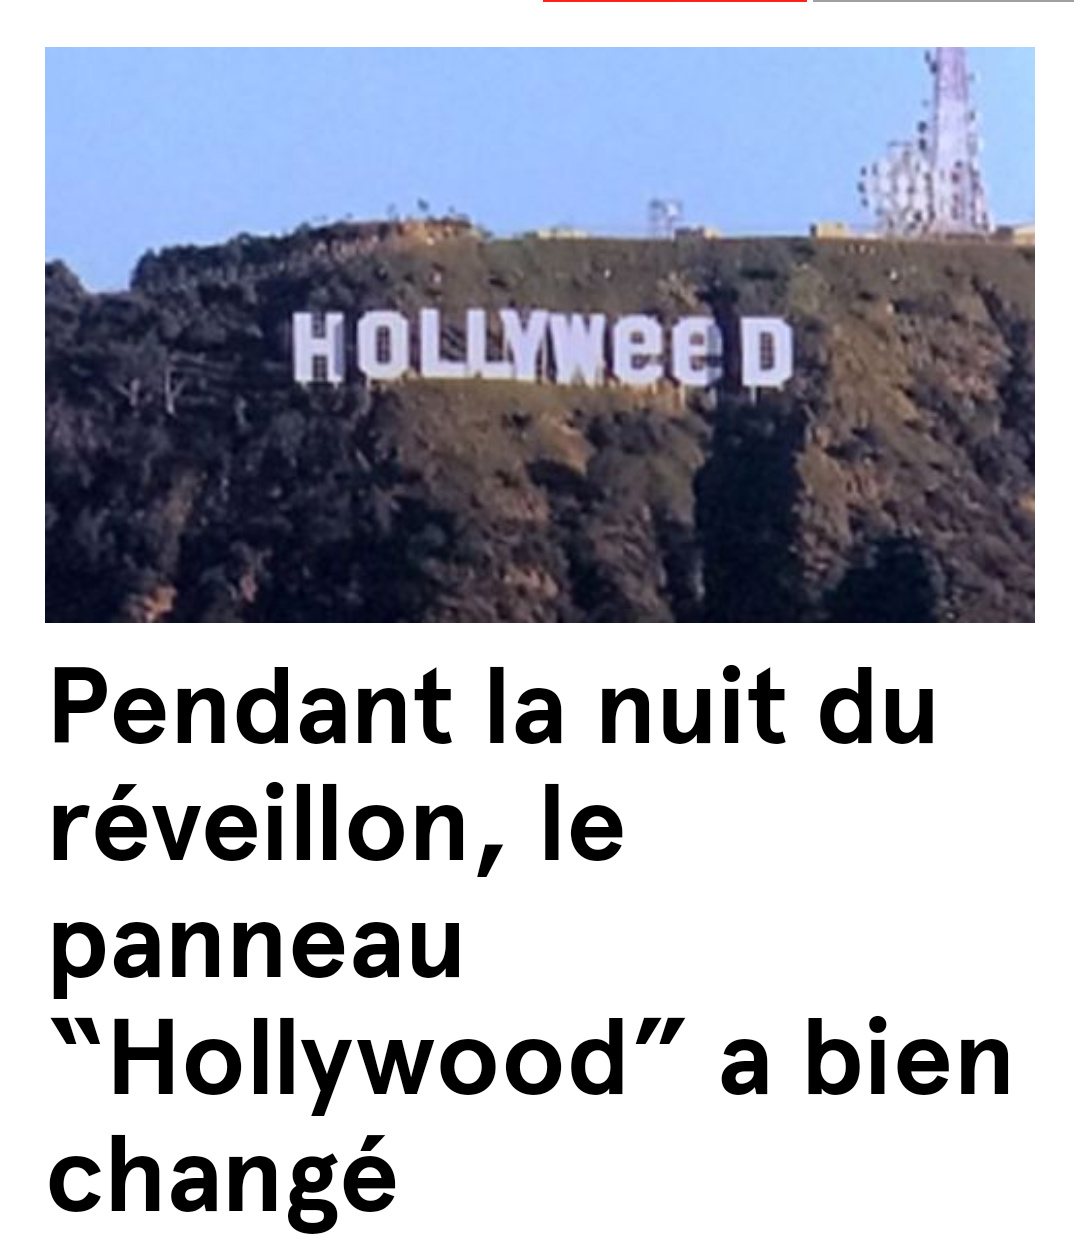 Vive hollyweed - meme